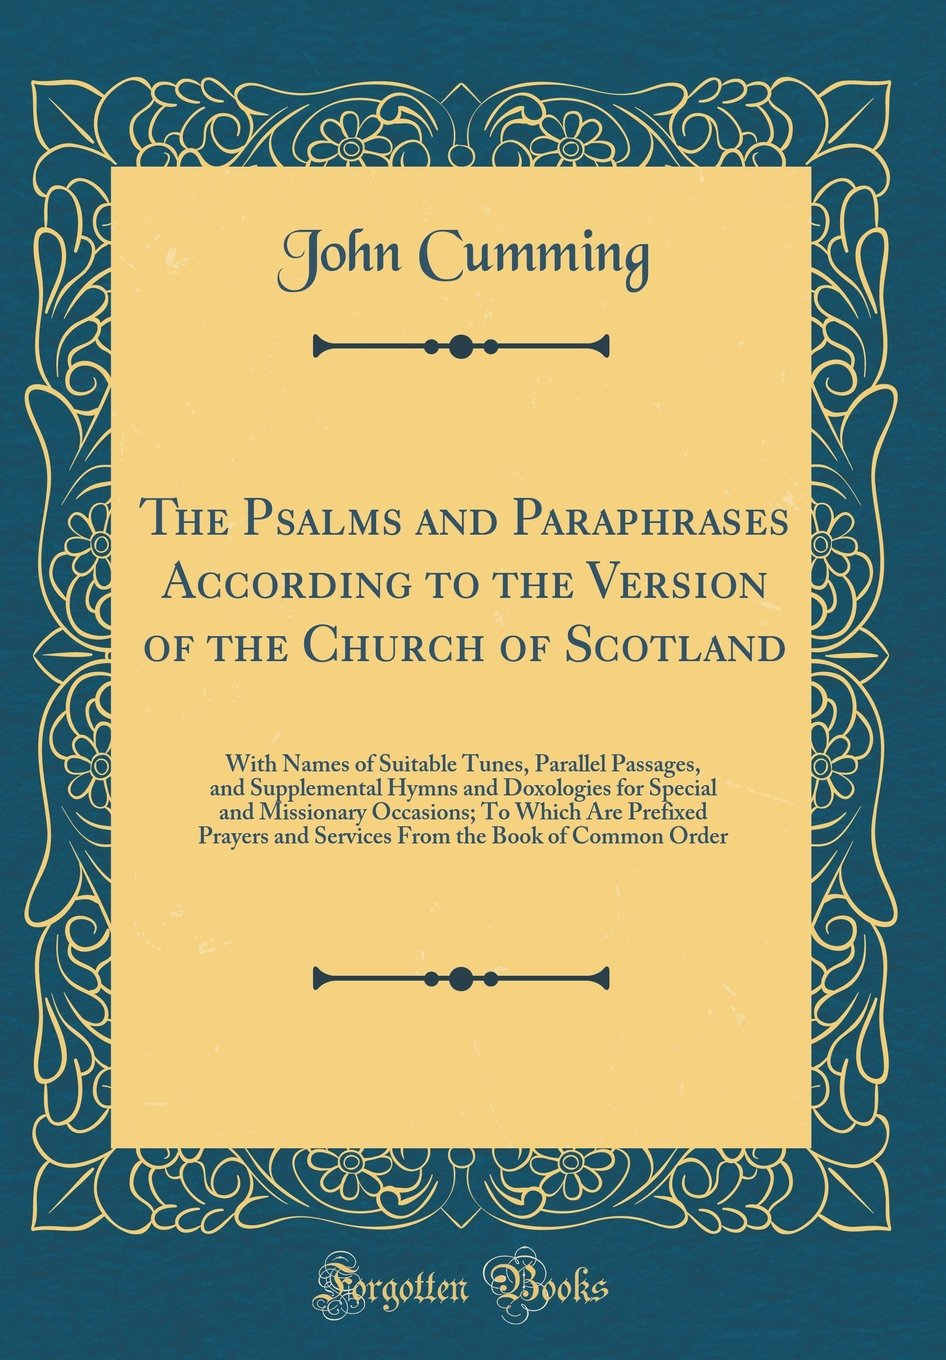 The Psalms and Paraphrases According to the Version of the Church of Scotland: With Names of Suitable Tunes, Parallel Passages, and Supplemental Hymns ... Are Prefixed Prayers and Services from the ebook